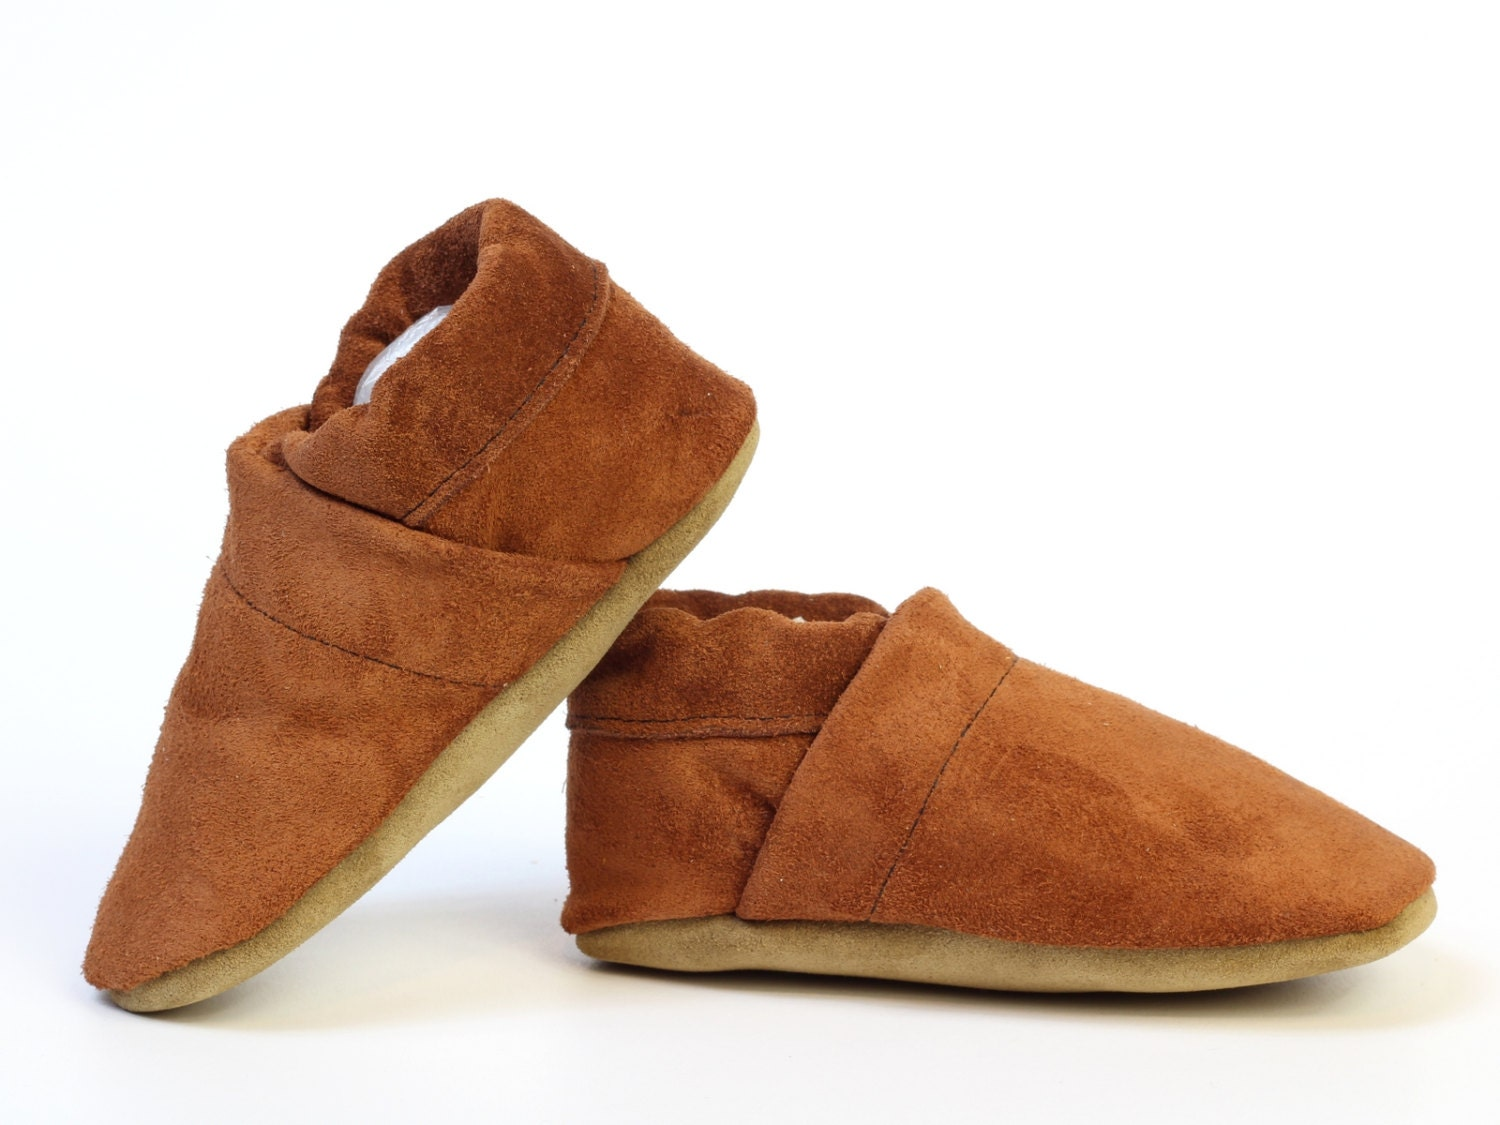 baby boy soft sole shoes leather slipper brown suede size